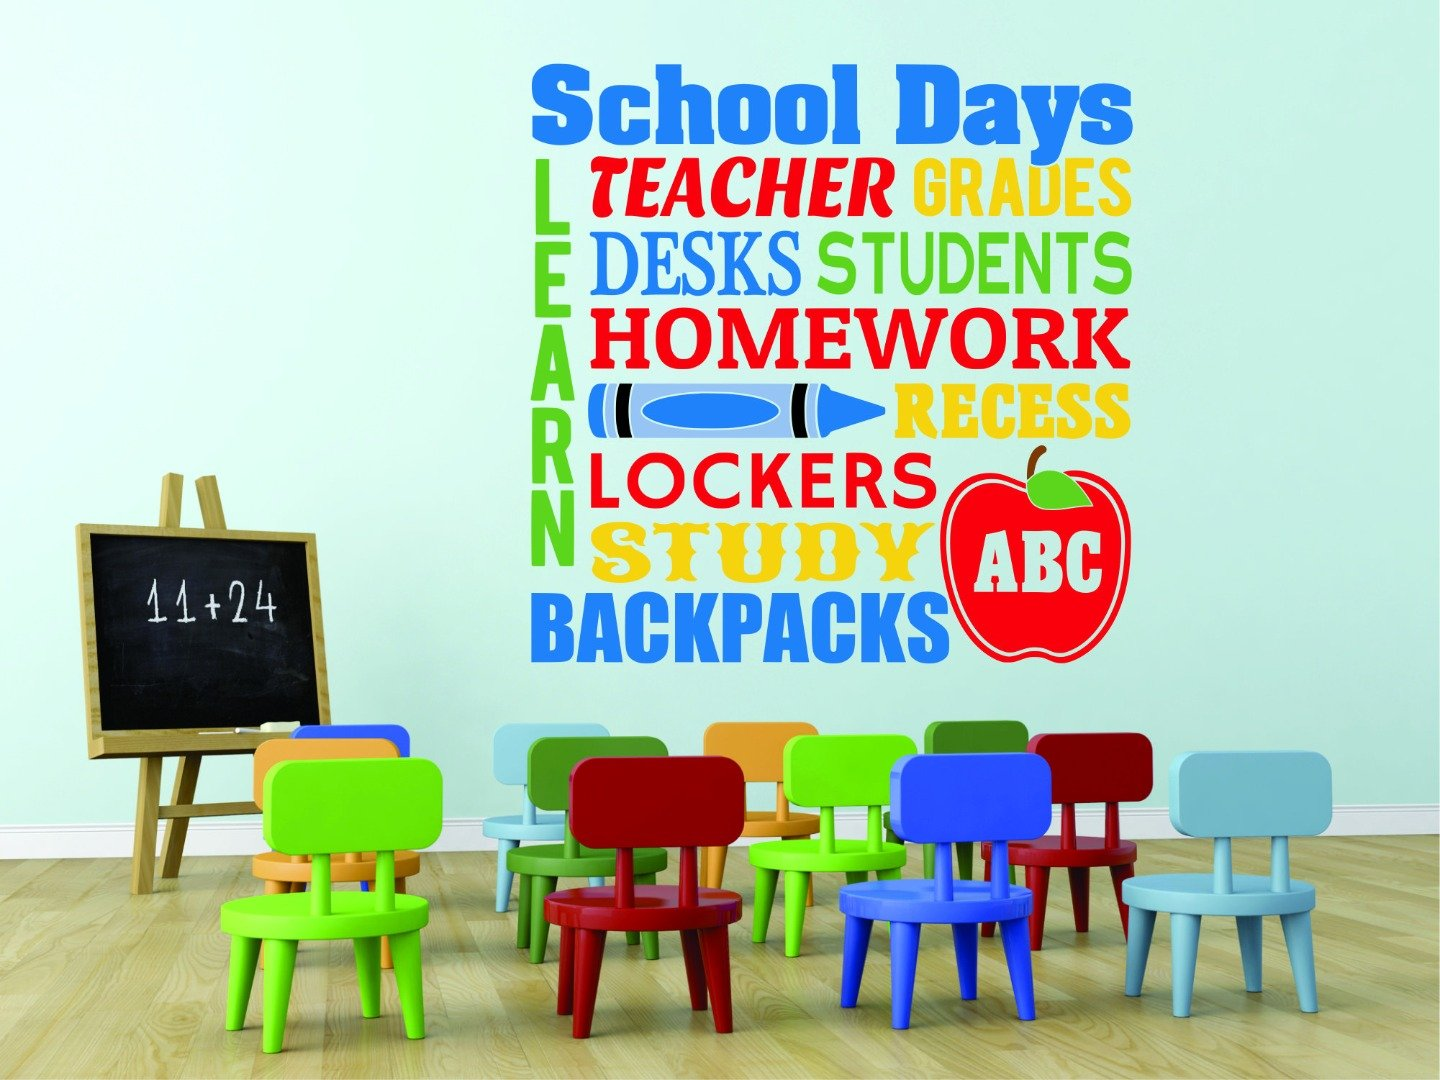 Design with Vinyl RAD 960 2 School Days Learn Teacher Ges Desks Students Homework Recess Lockers Study Backpacks Abc Classroom Preschool Quote Wall Decal As Seen 16 x 16